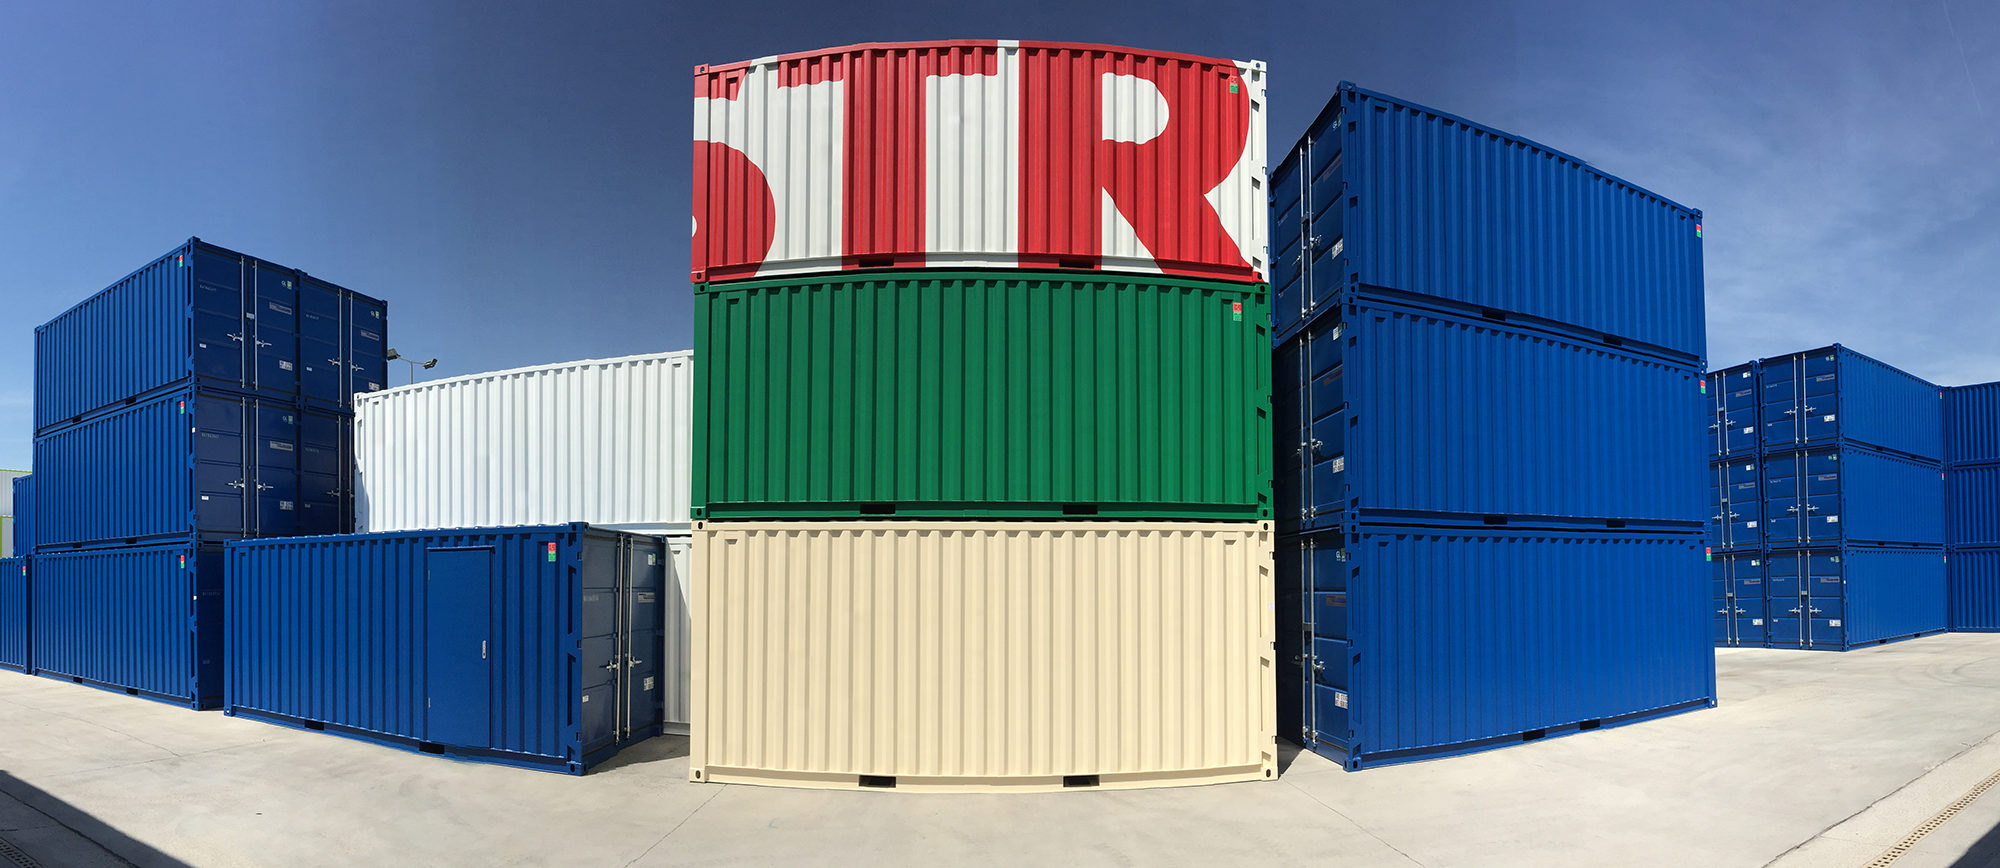 Containers neufs